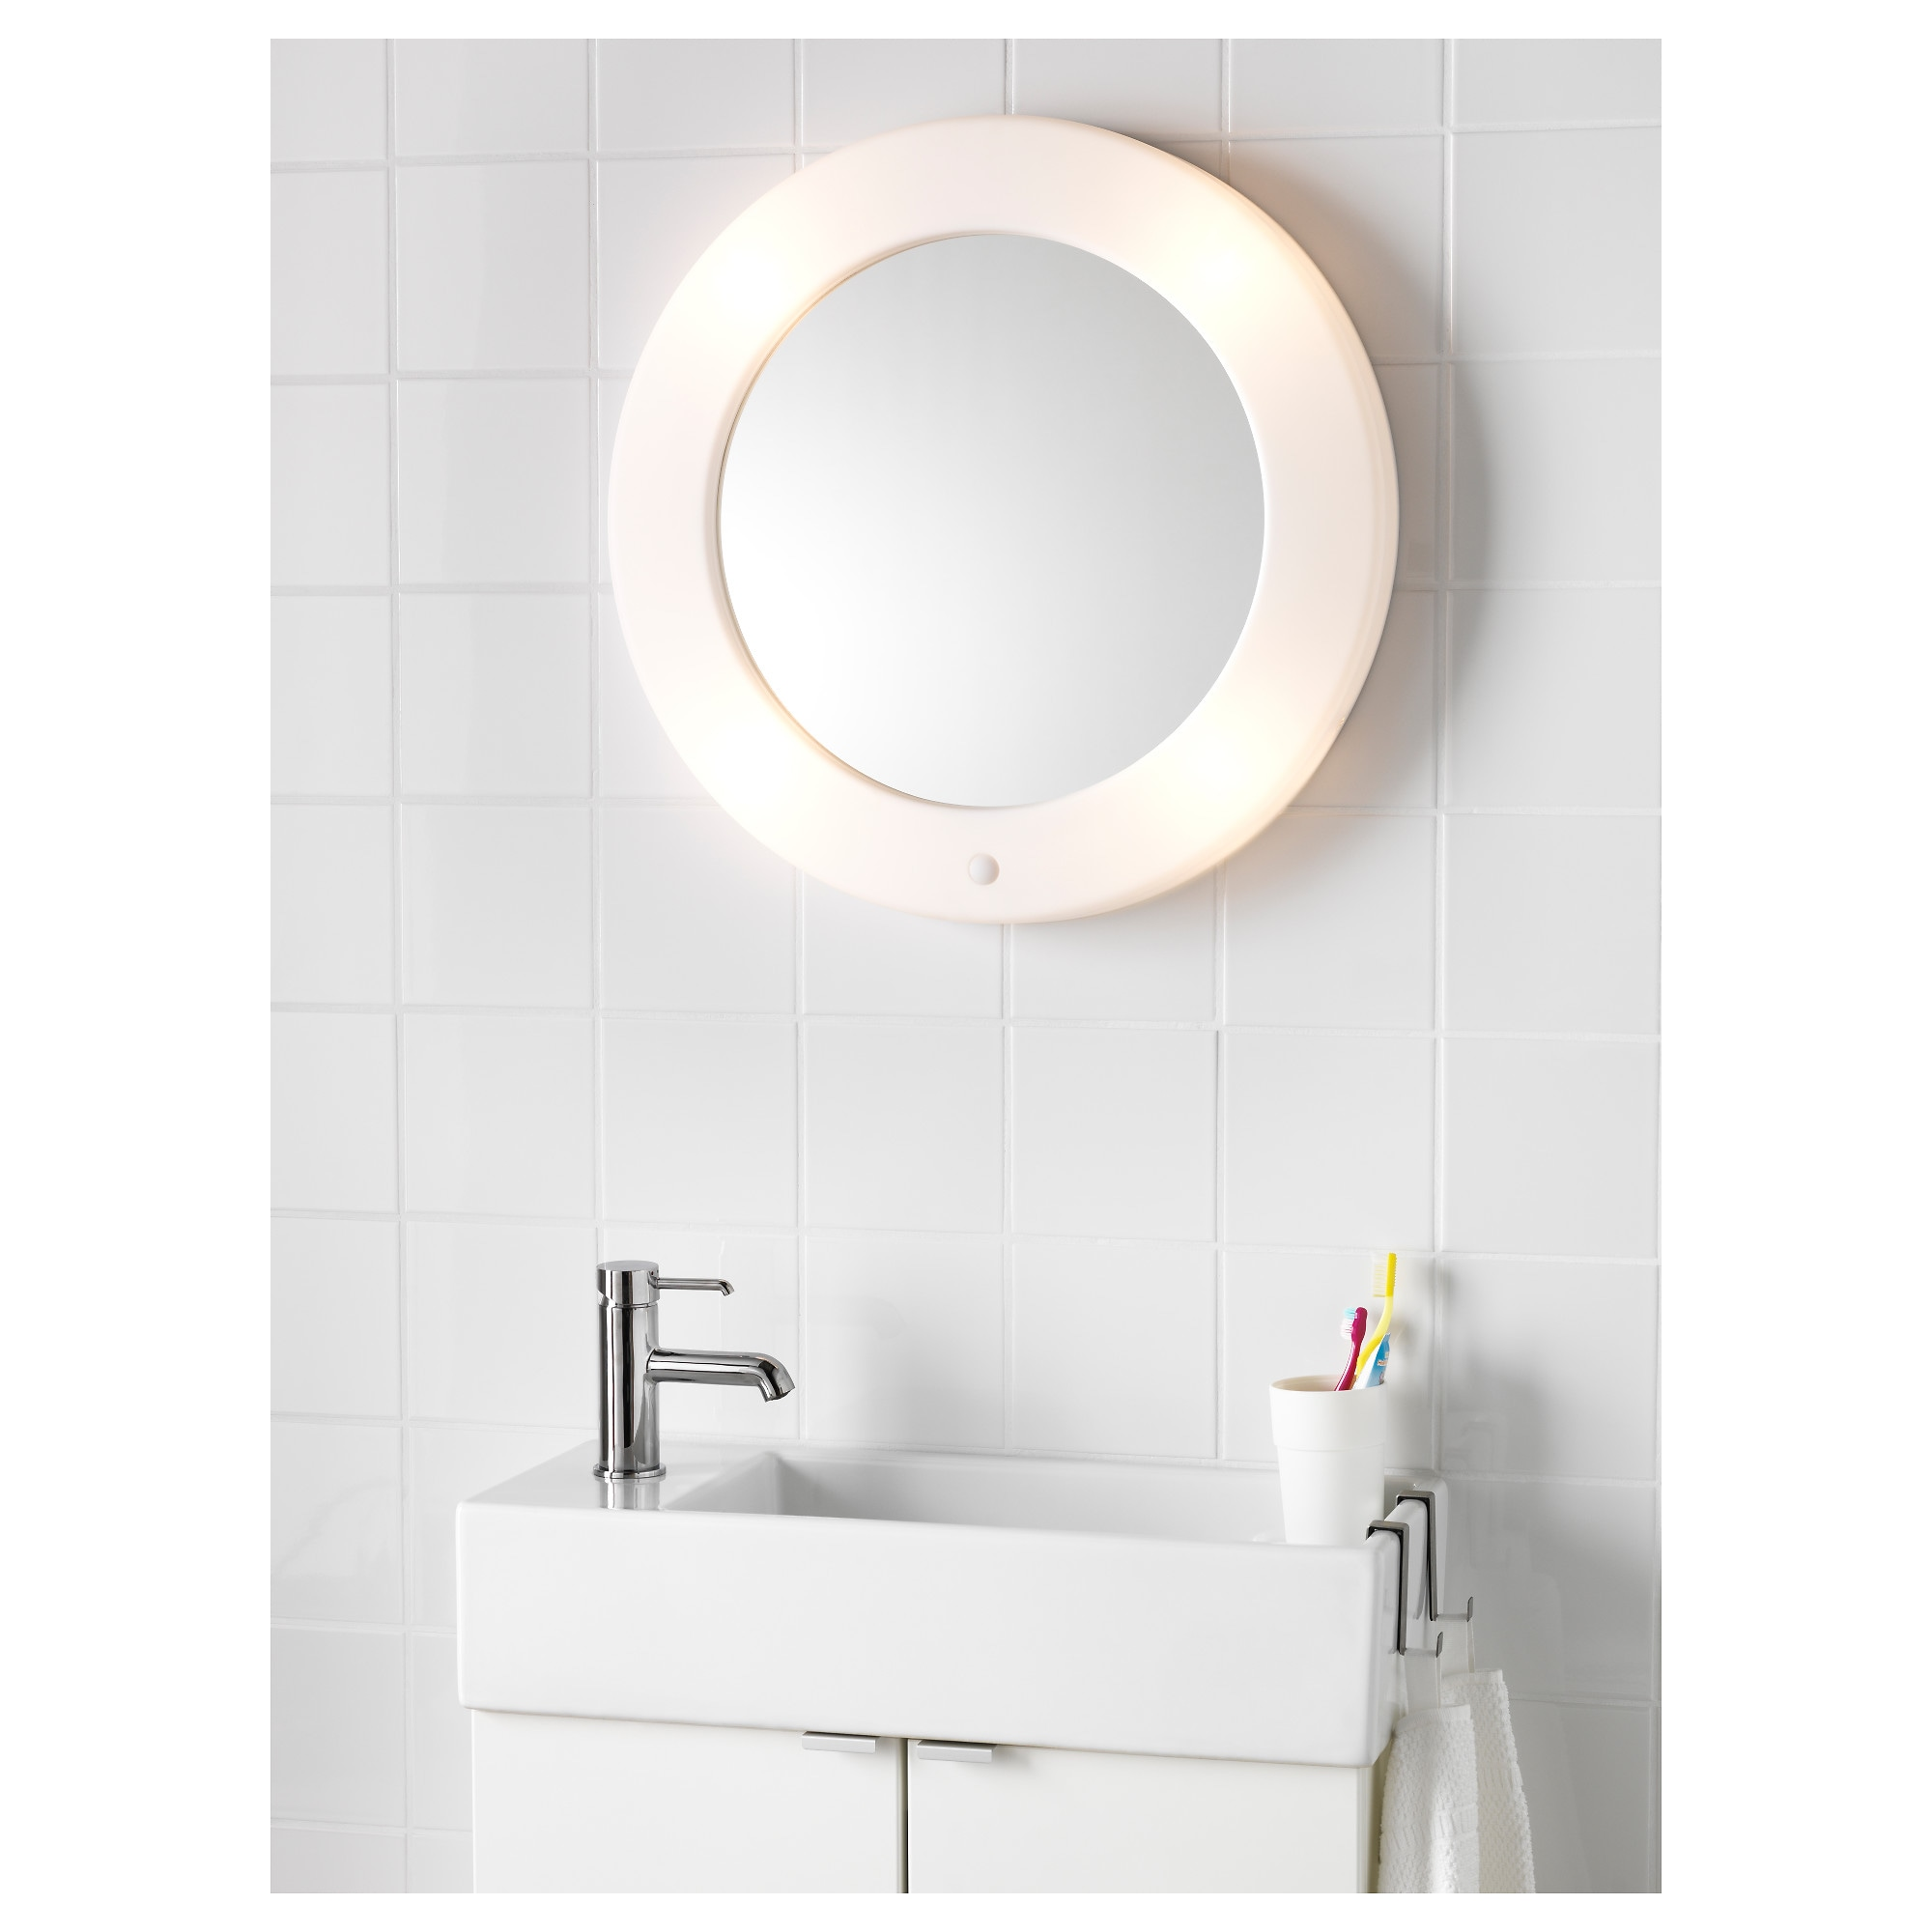 LILLJORM Mirror with integrated lighting IKEA